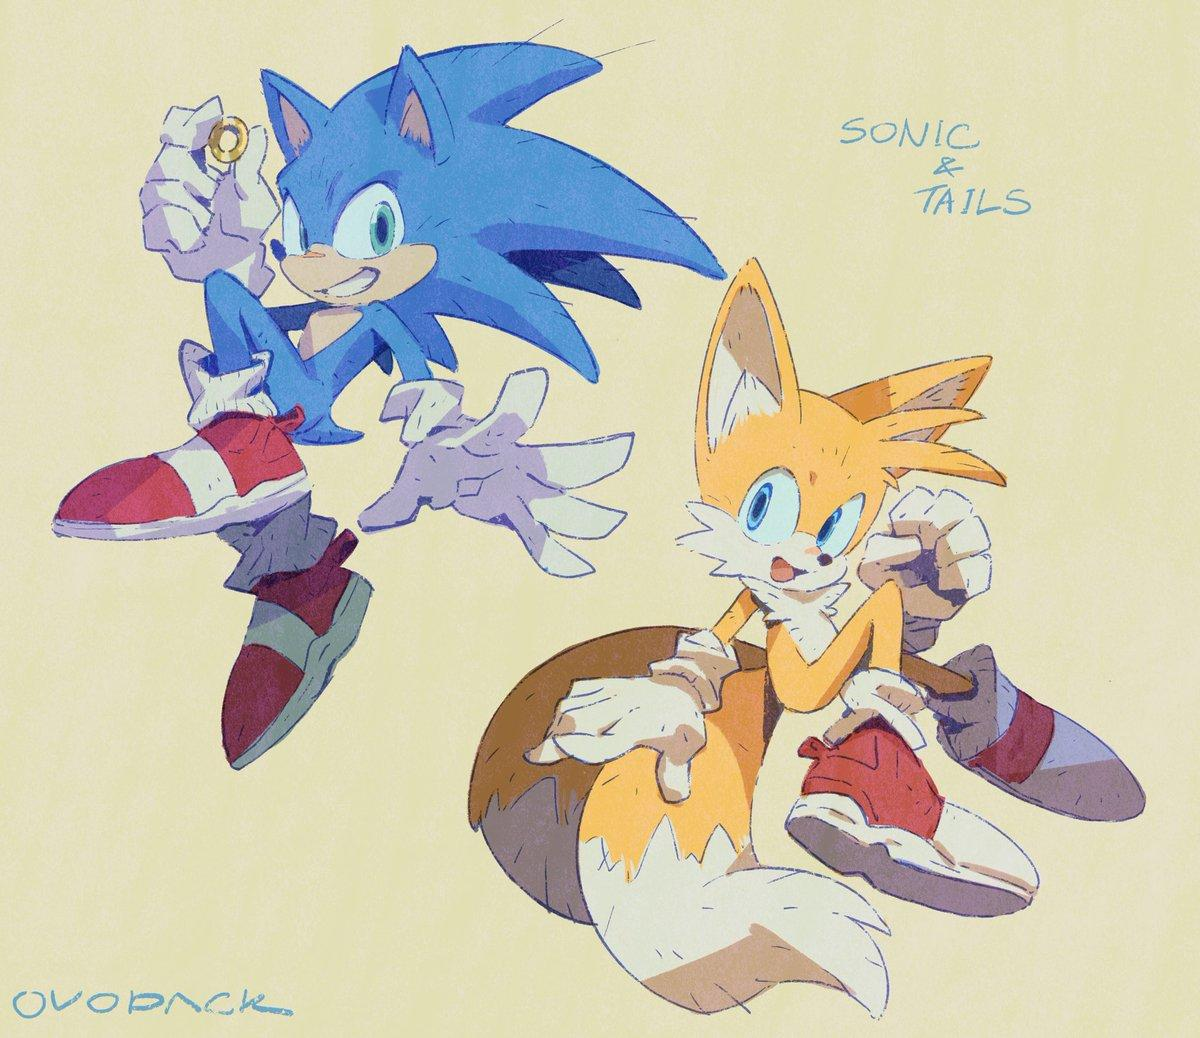 New Sonic Draws Involuntarily I Want To See A Buddy Movie With Tales That I Haven T Seen Yet Sonic The Hedgehog Know Your Meme